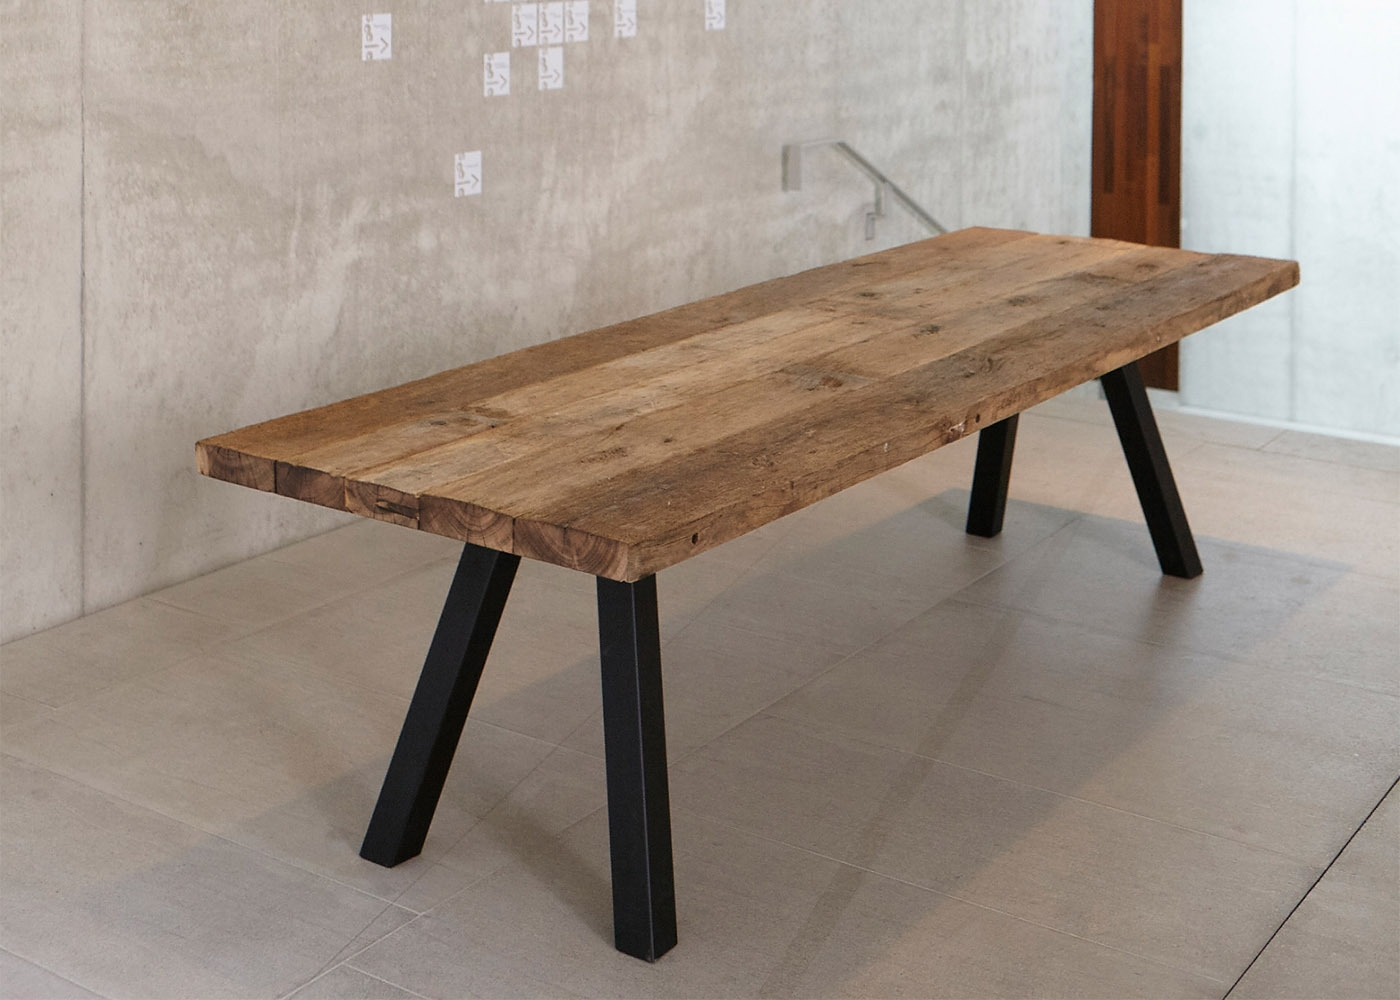 Banc de table de repas en bois design chez ksl living for Table et banc